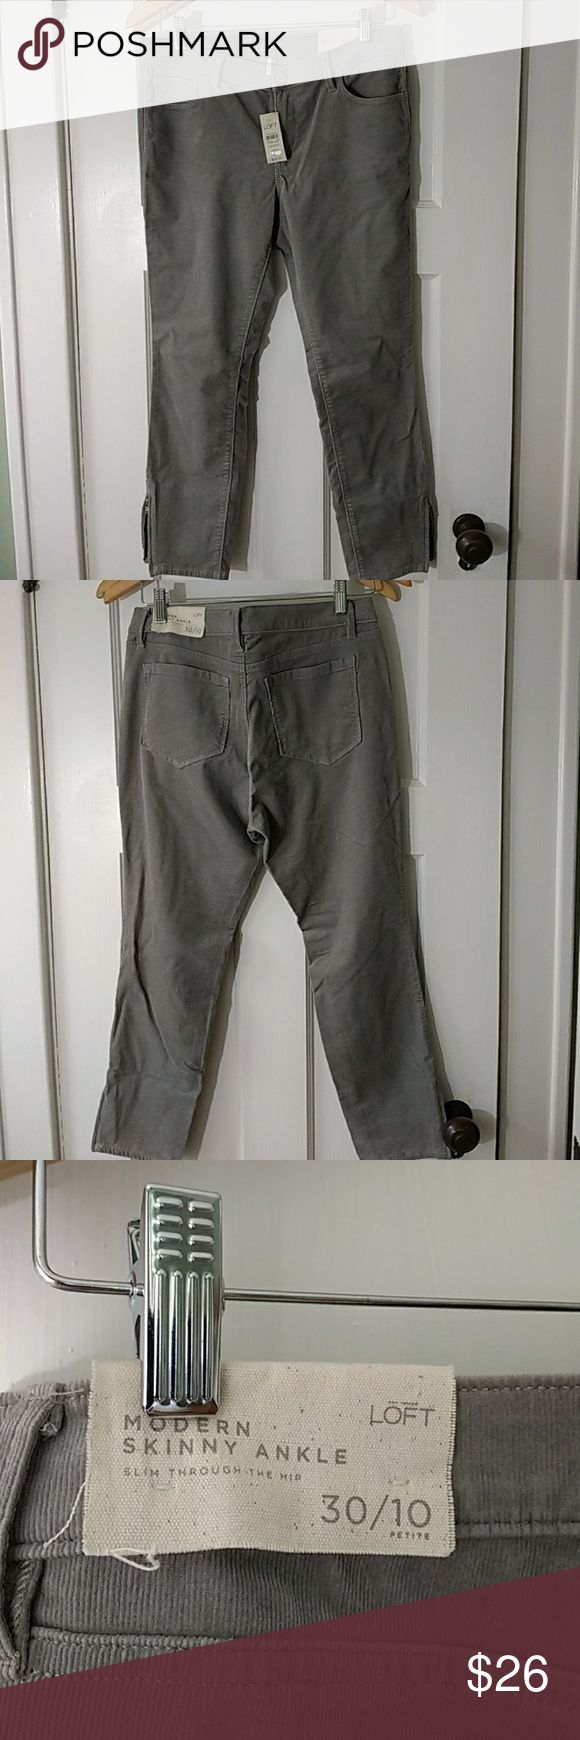 """Anne Taylor Loft skinny cords NWT. A must-have neutral for fall! These skinny ankle pants are made of a stretchy sage green pinwale courduroy, complete with ankle zips! 16"""" waistband, 24"""" inseam, 9"""" rise. Cotton/spandex blend. PETITE size. Anne Taylor LOFT Pants Ankle & Cropped"""